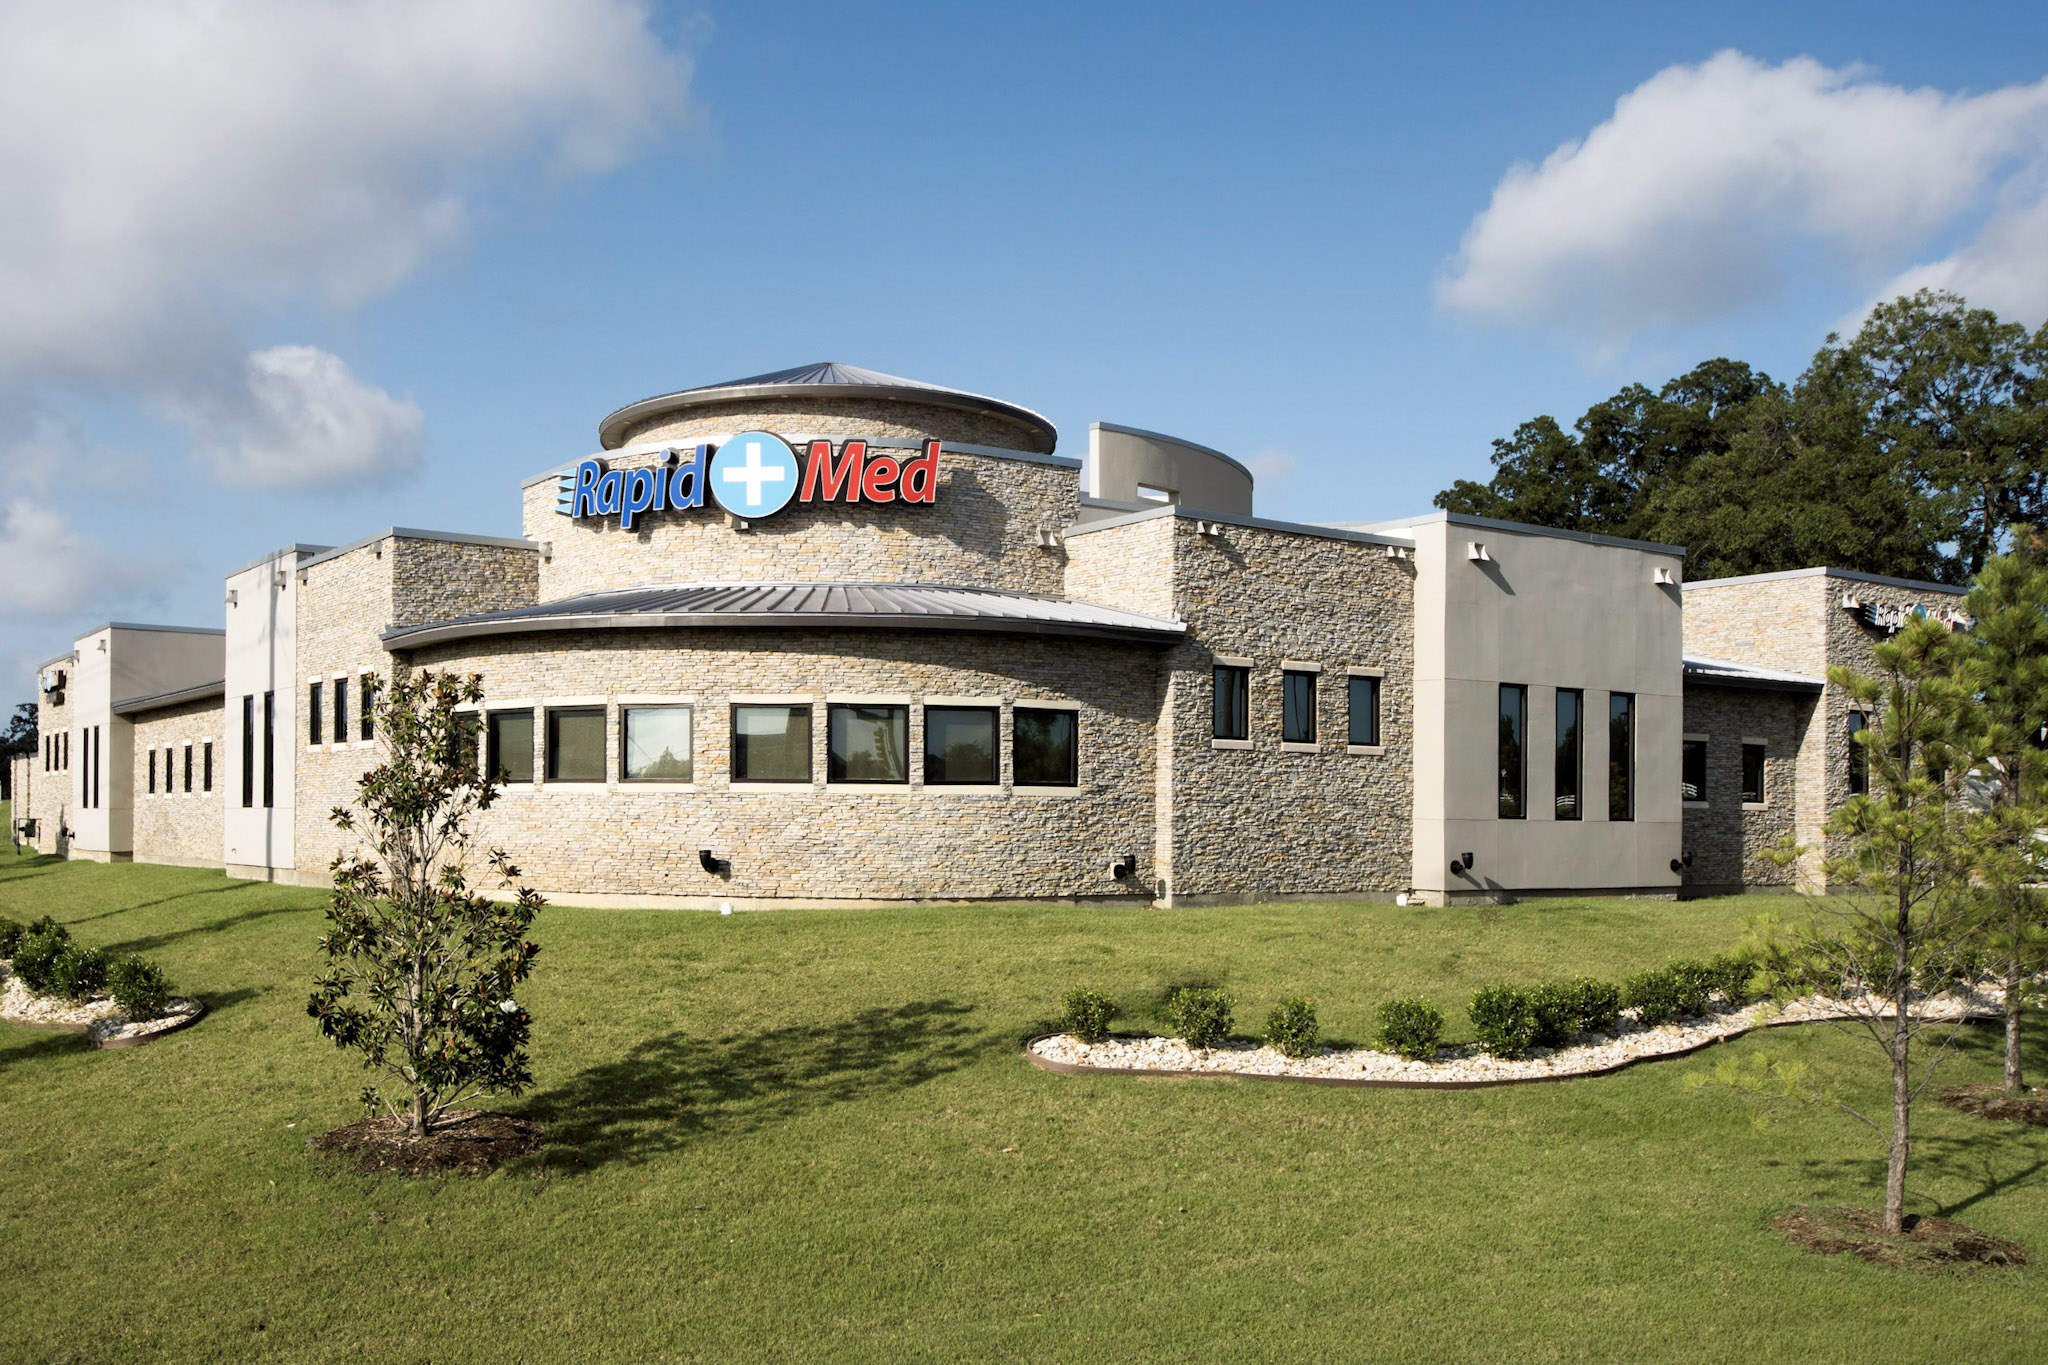 Rapid Med Urgent Care - Highland Village - Urgent Care Solv in Double Oak, TX